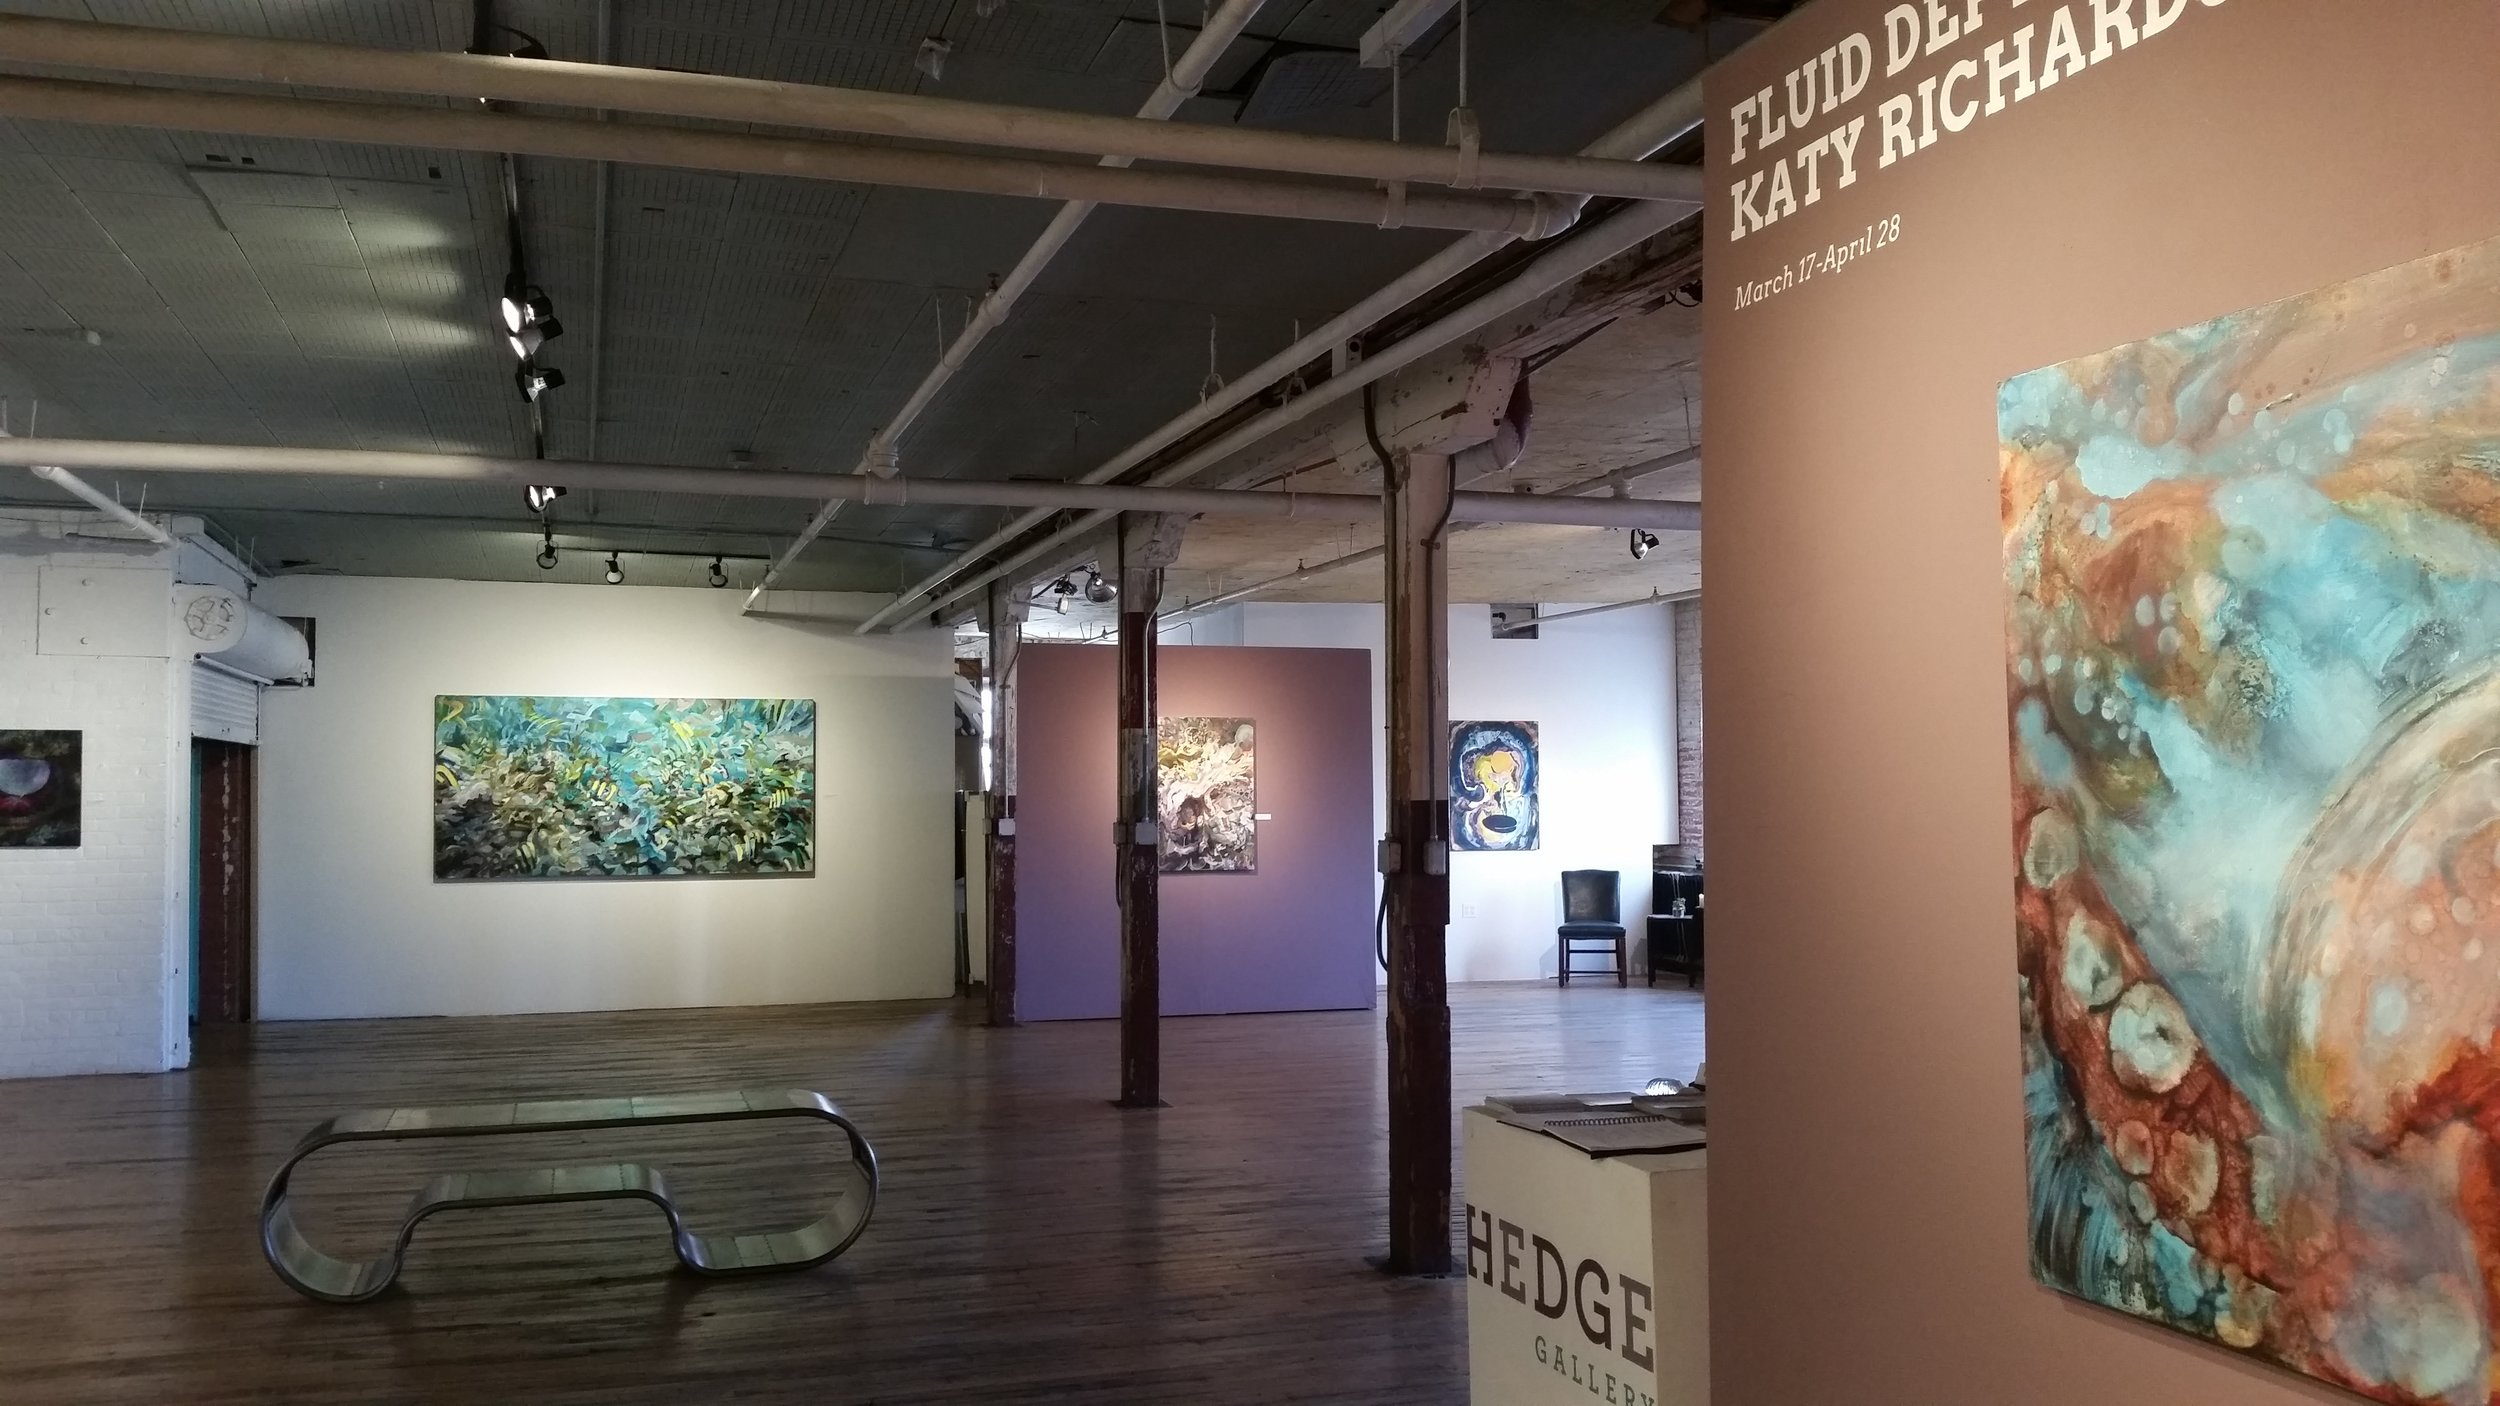 Installation view of Katy Richards' Fluid Depths @ Hedge Gallery